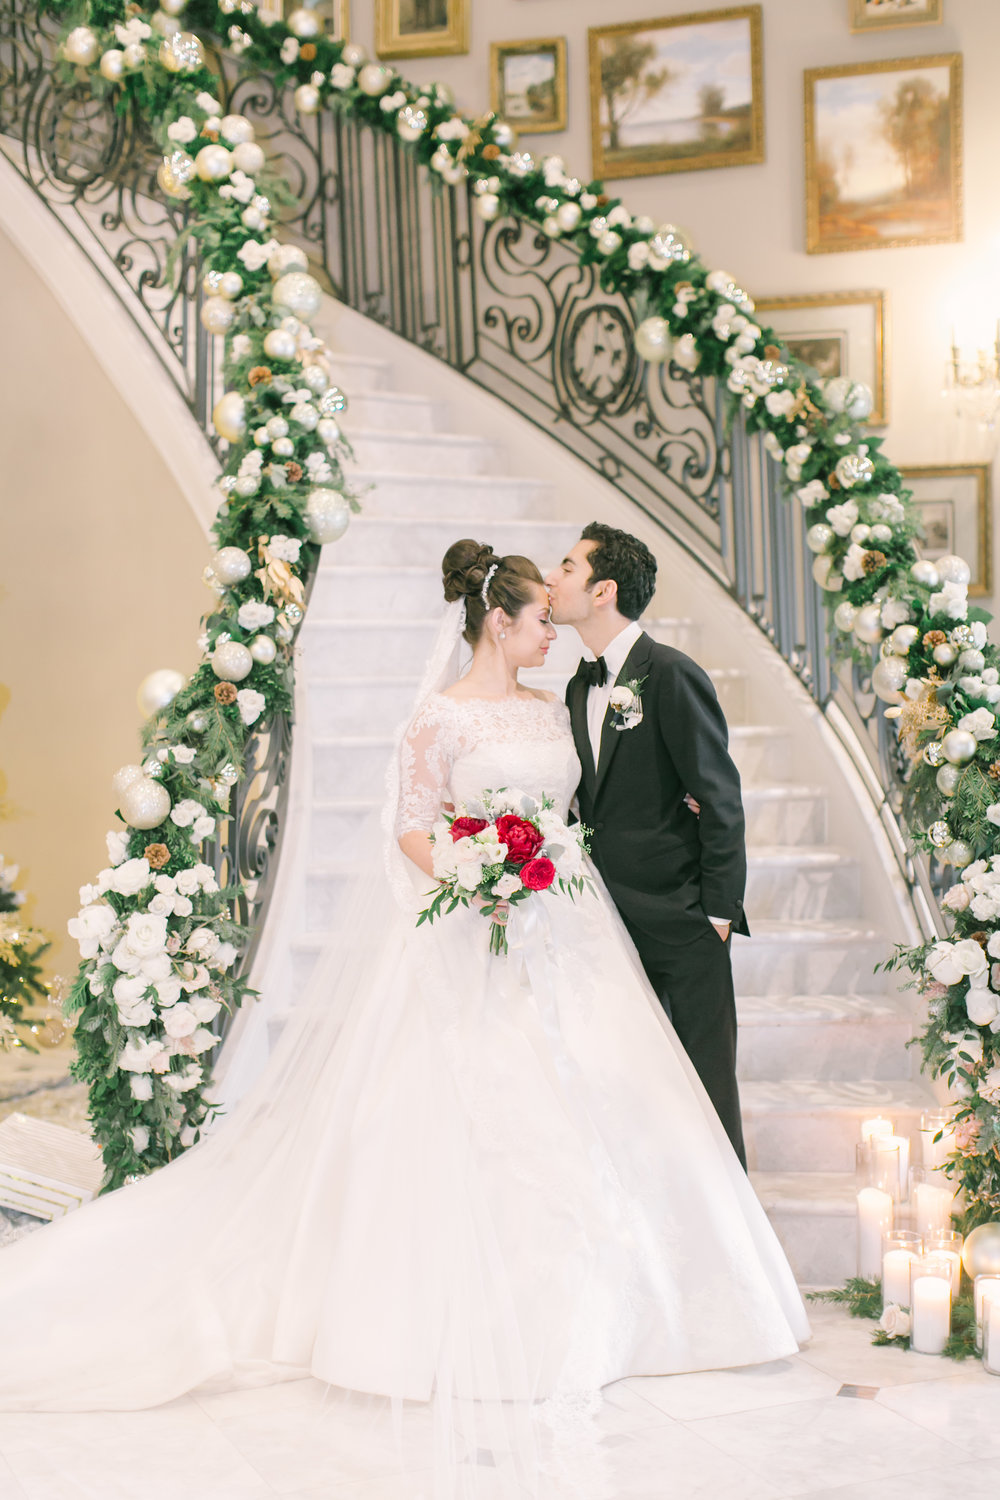 Rose and Stelios - Love and Light Photographs